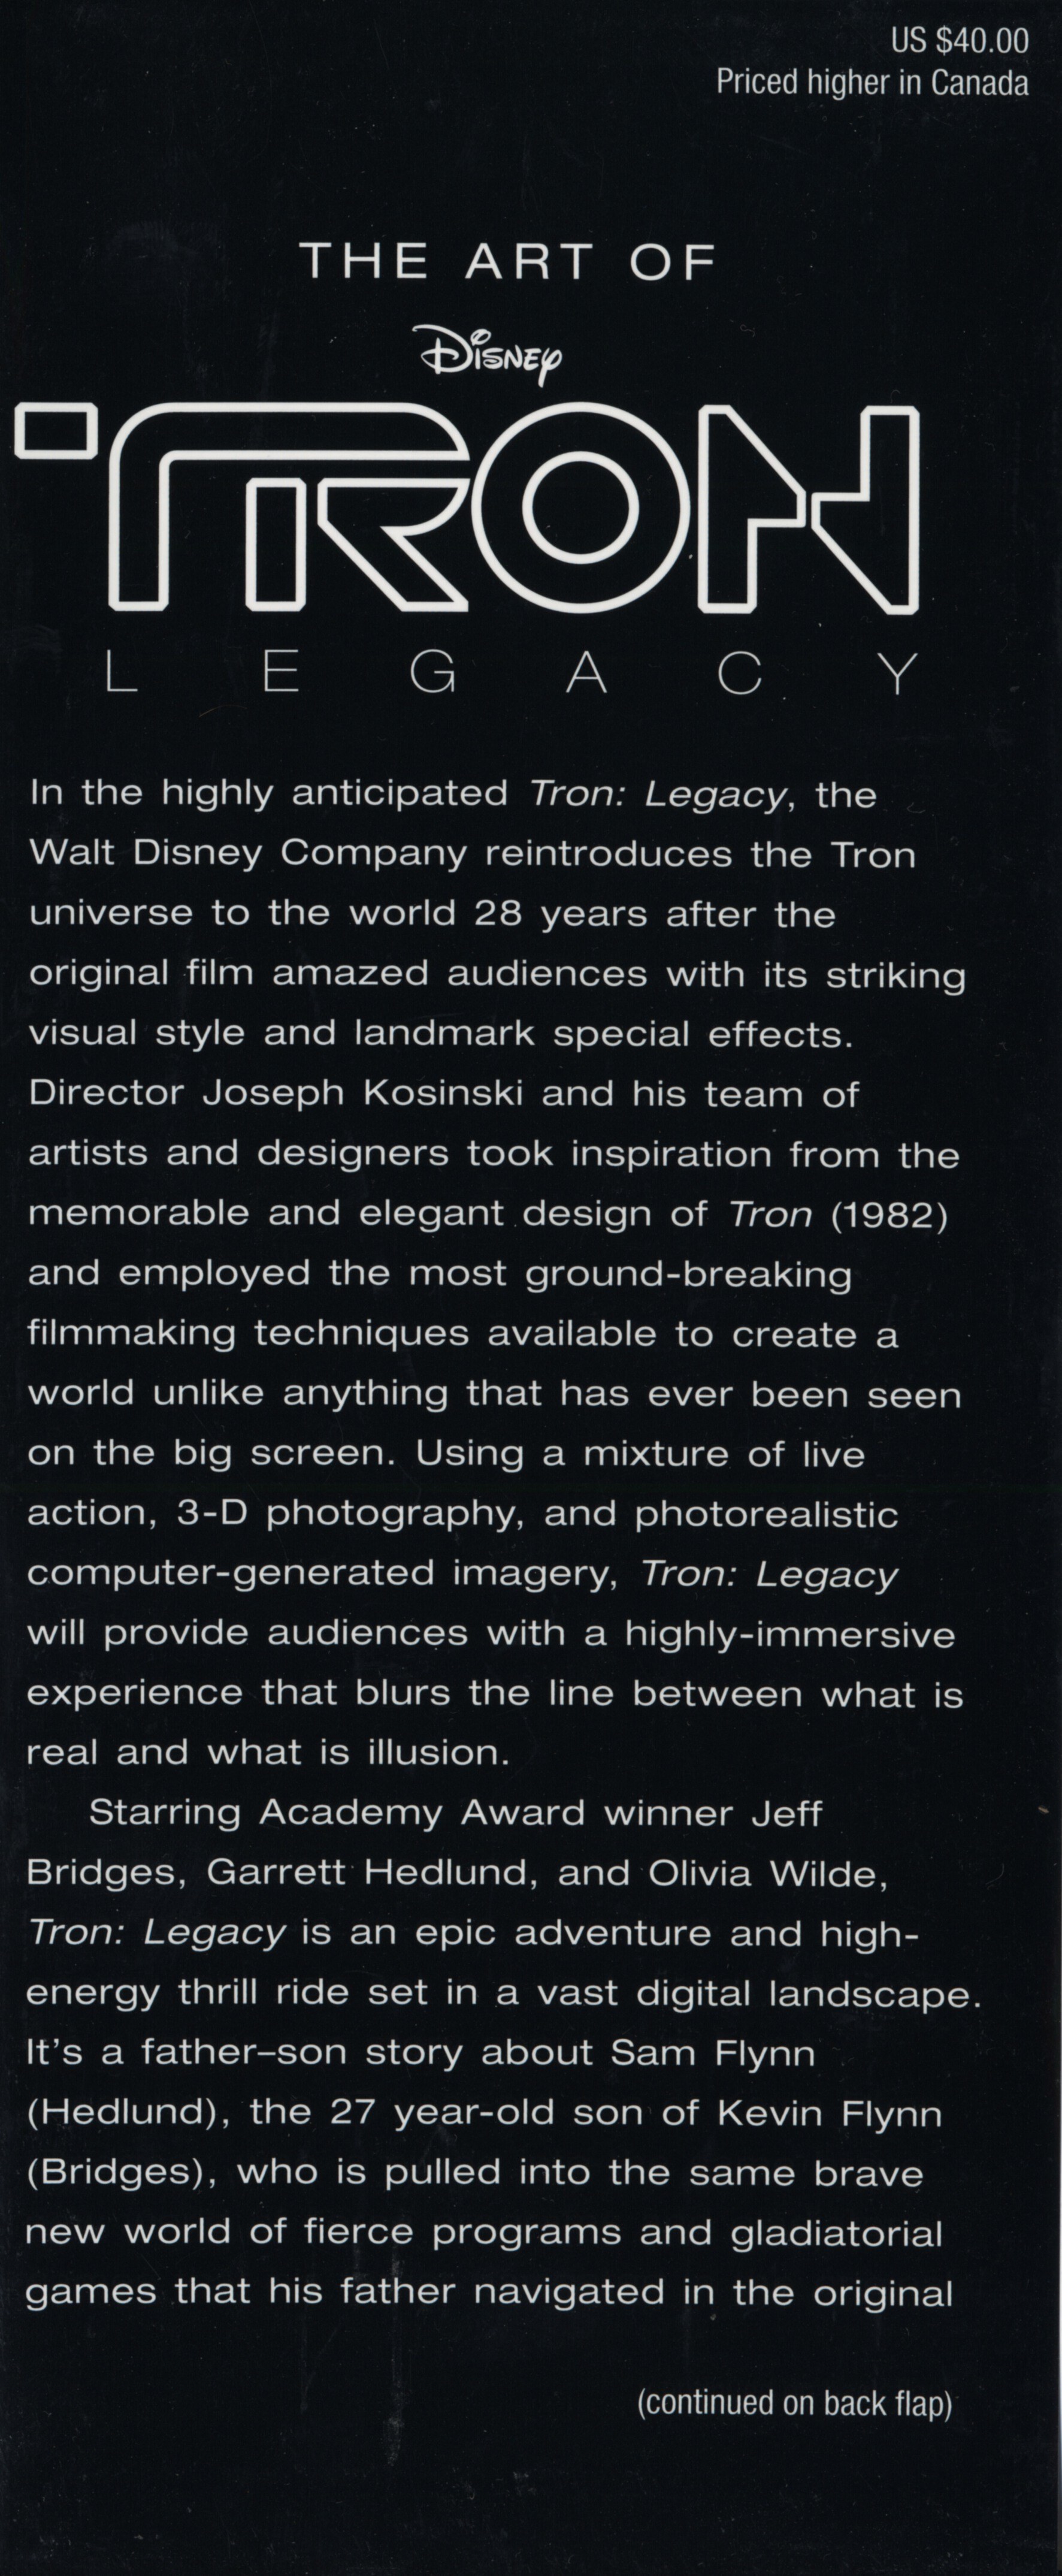 Disney Company text TRON: